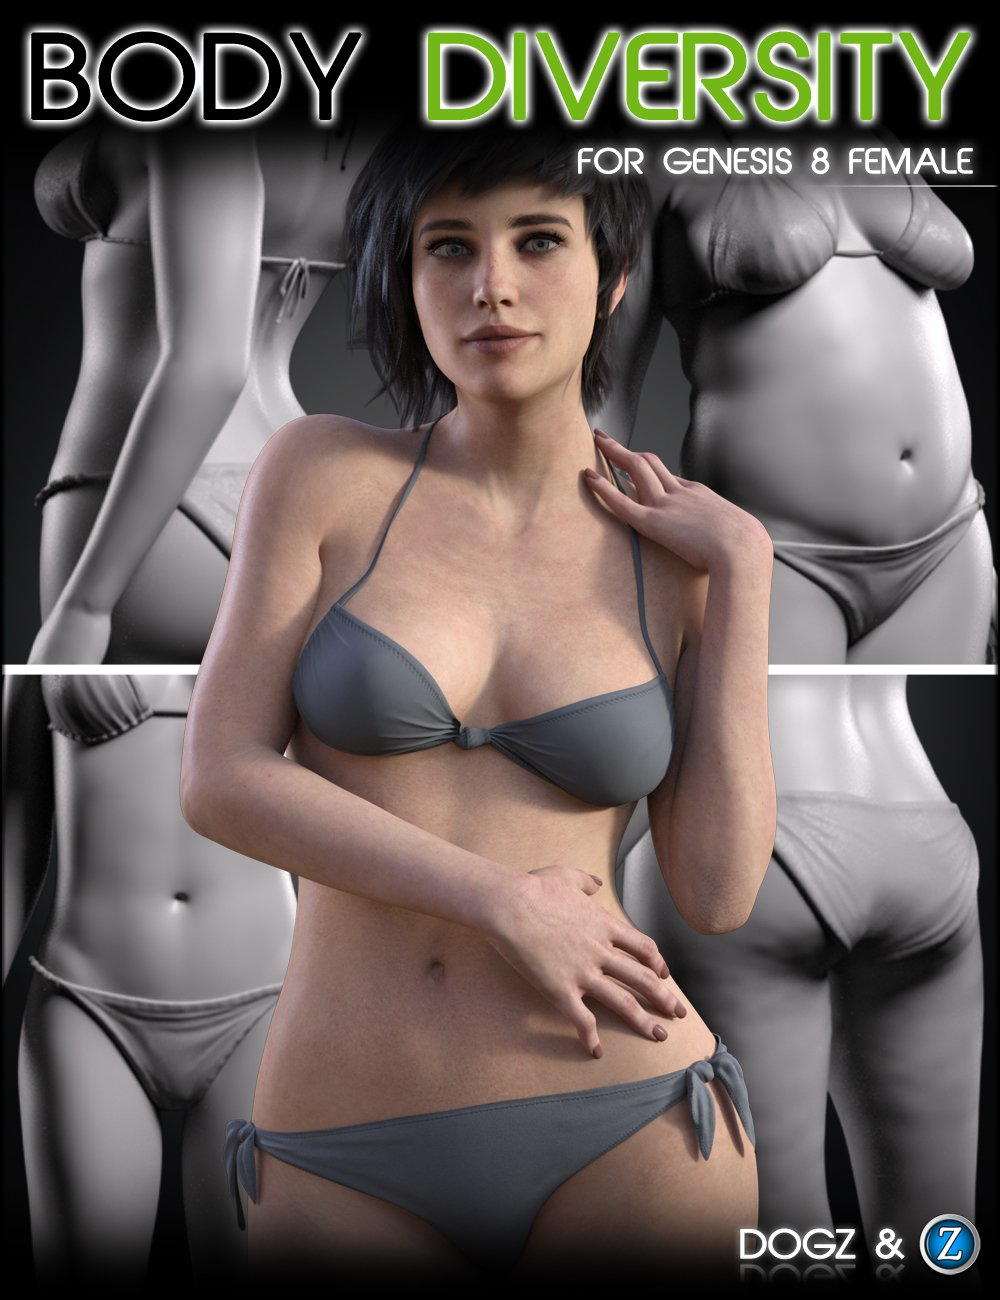 Body Diversity Morphs for Genesis 8 Female(s) by: DogzZev0, 3D Models by Daz 3D